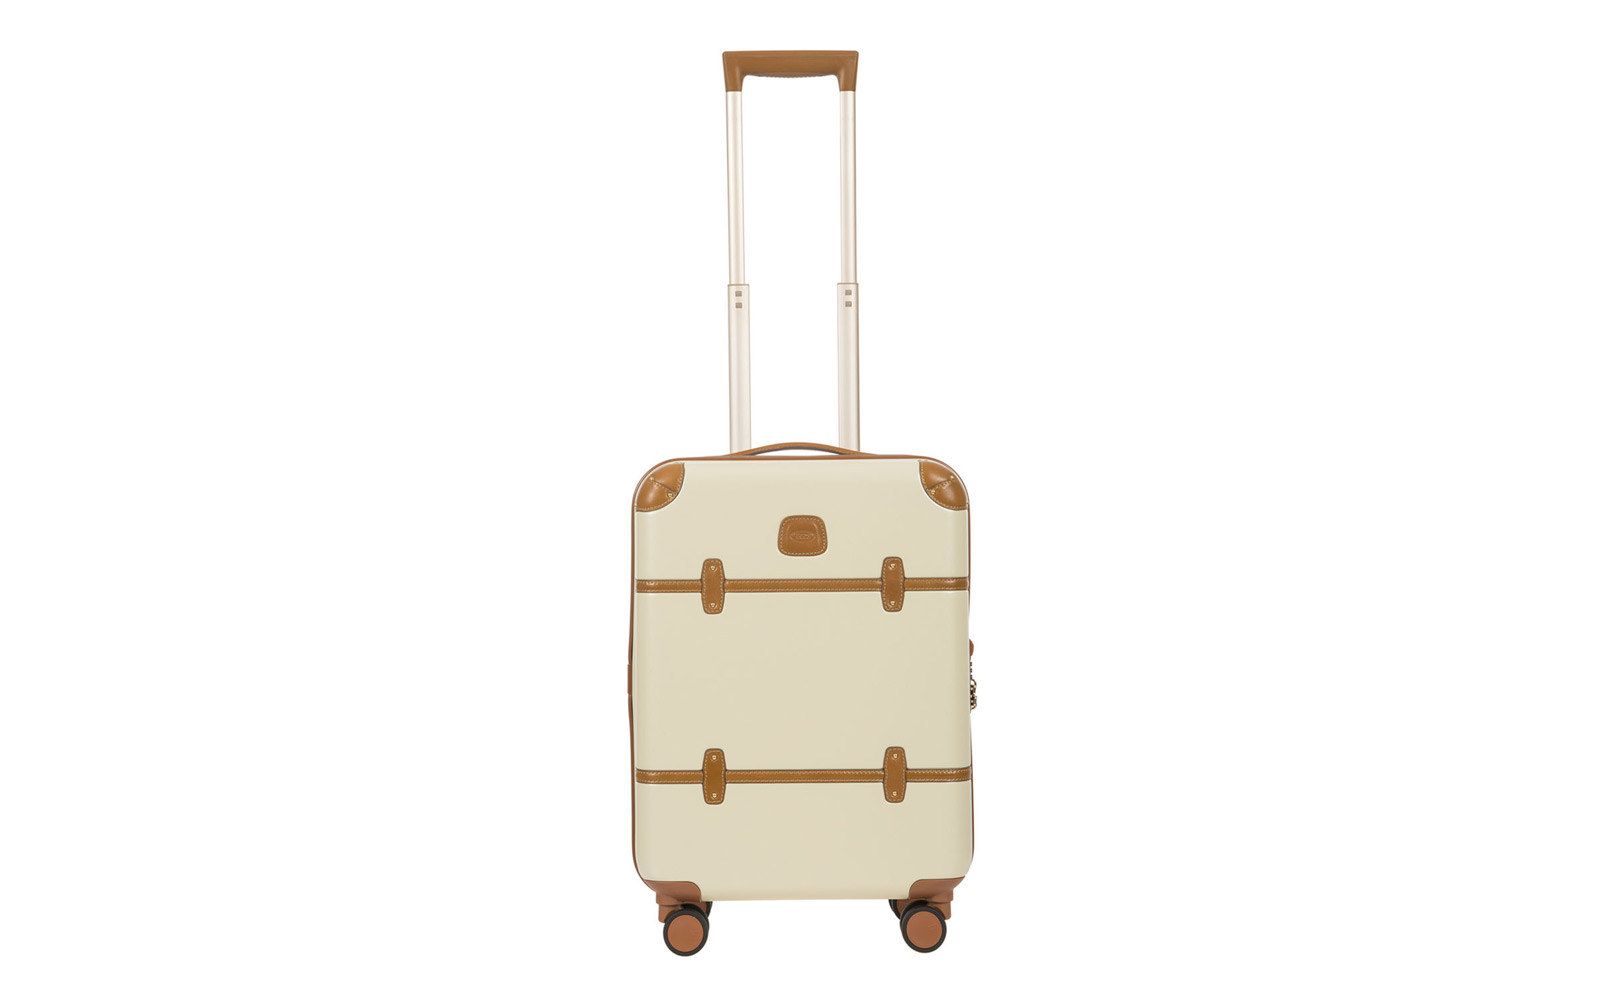 ff328acd66eb A Carry-on Luggage Size Guide by Airline